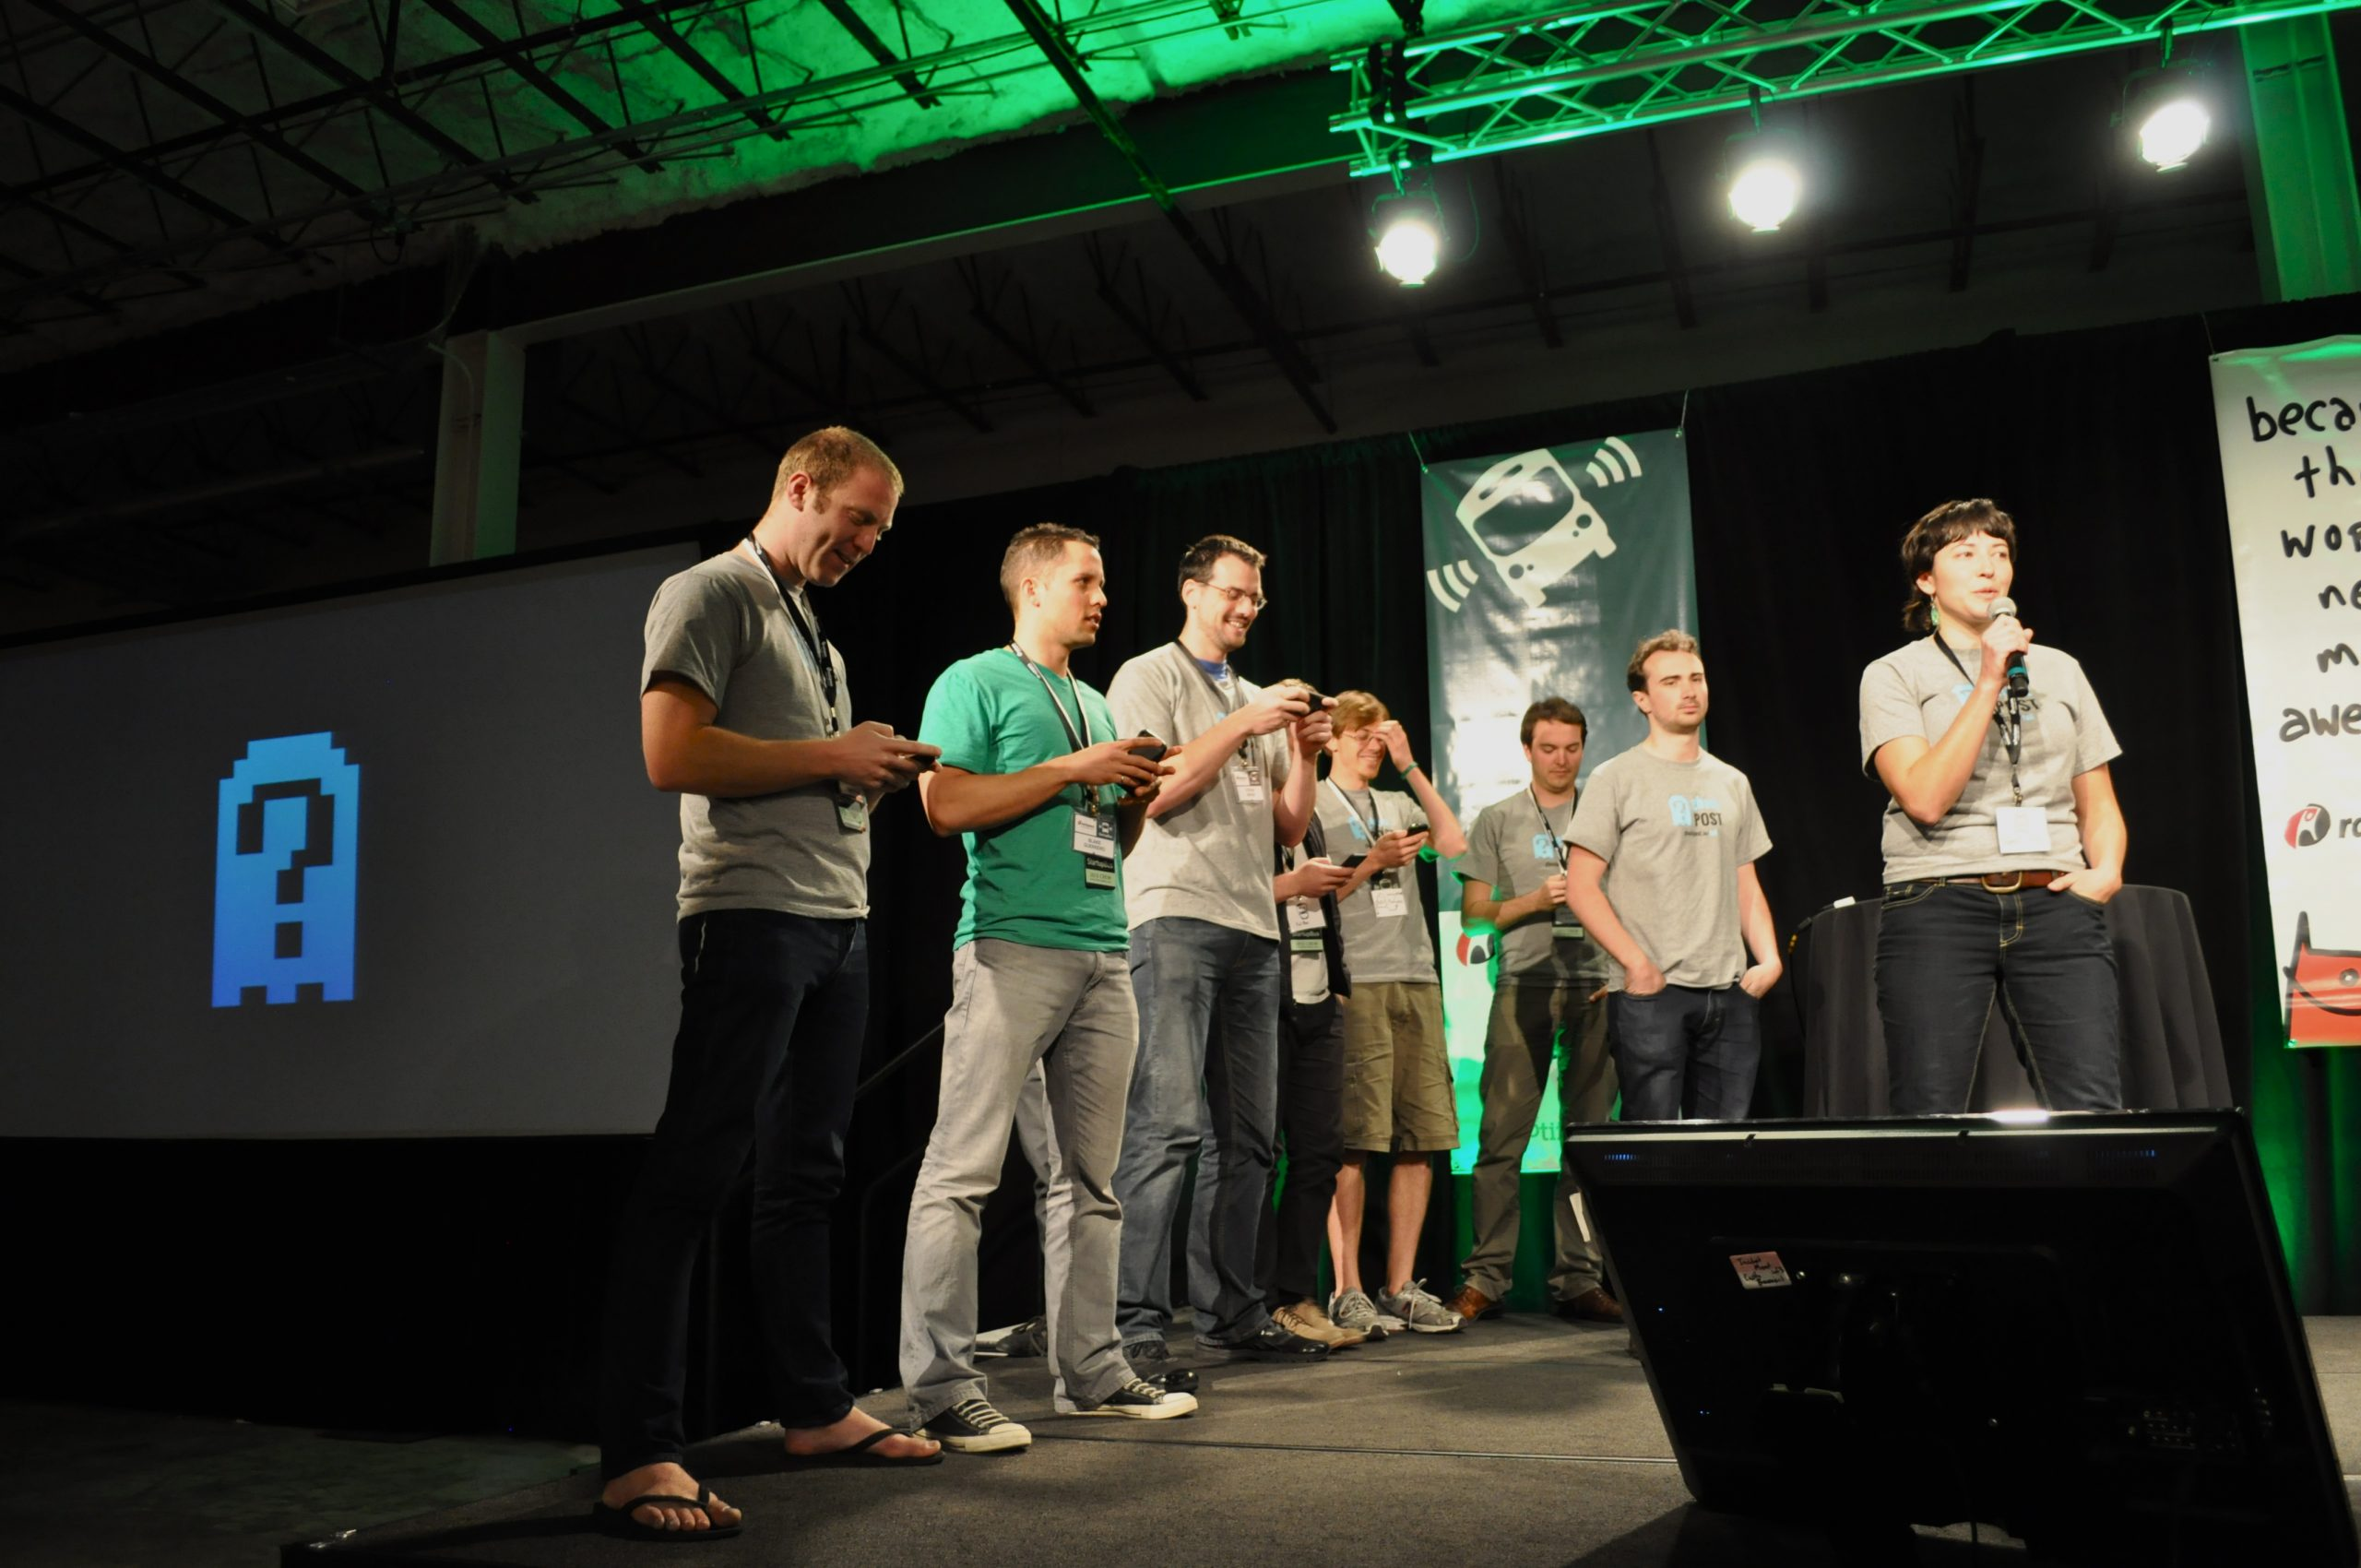 The ghostPOST team pitches to the panel of judges. Photos by Iris Dimmick.